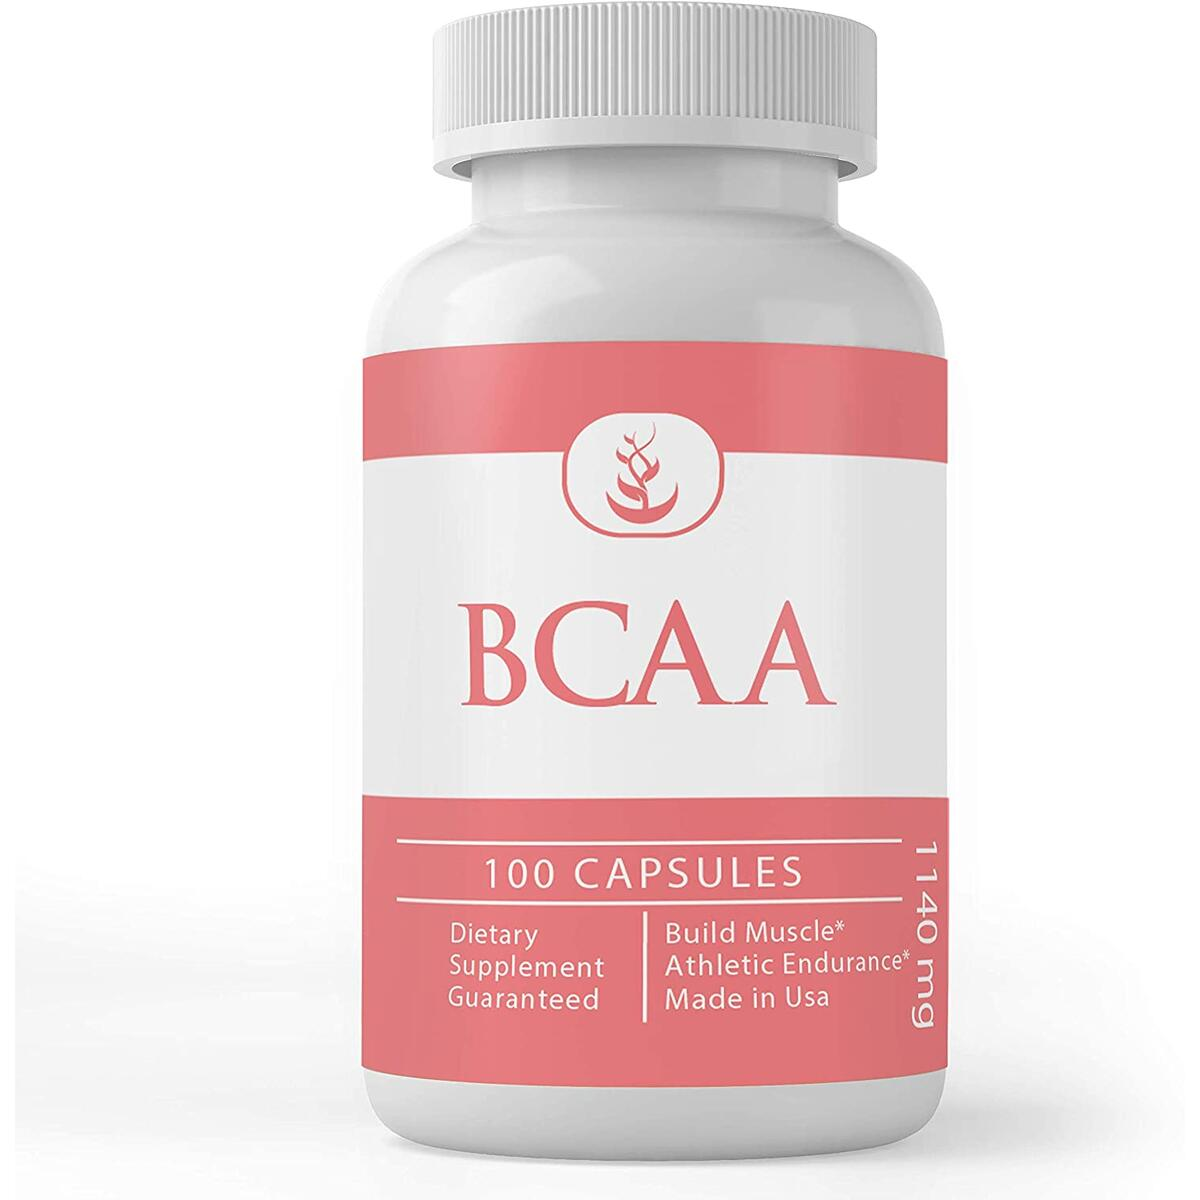 BCAA (100 Capsules, 1200 mg Servings), Easy On-The-Go Packaging, Boost Pre-Workout Intensity & Muscle Growth, Non-GMO, Gluten-Free by Pure Organic Ingredients